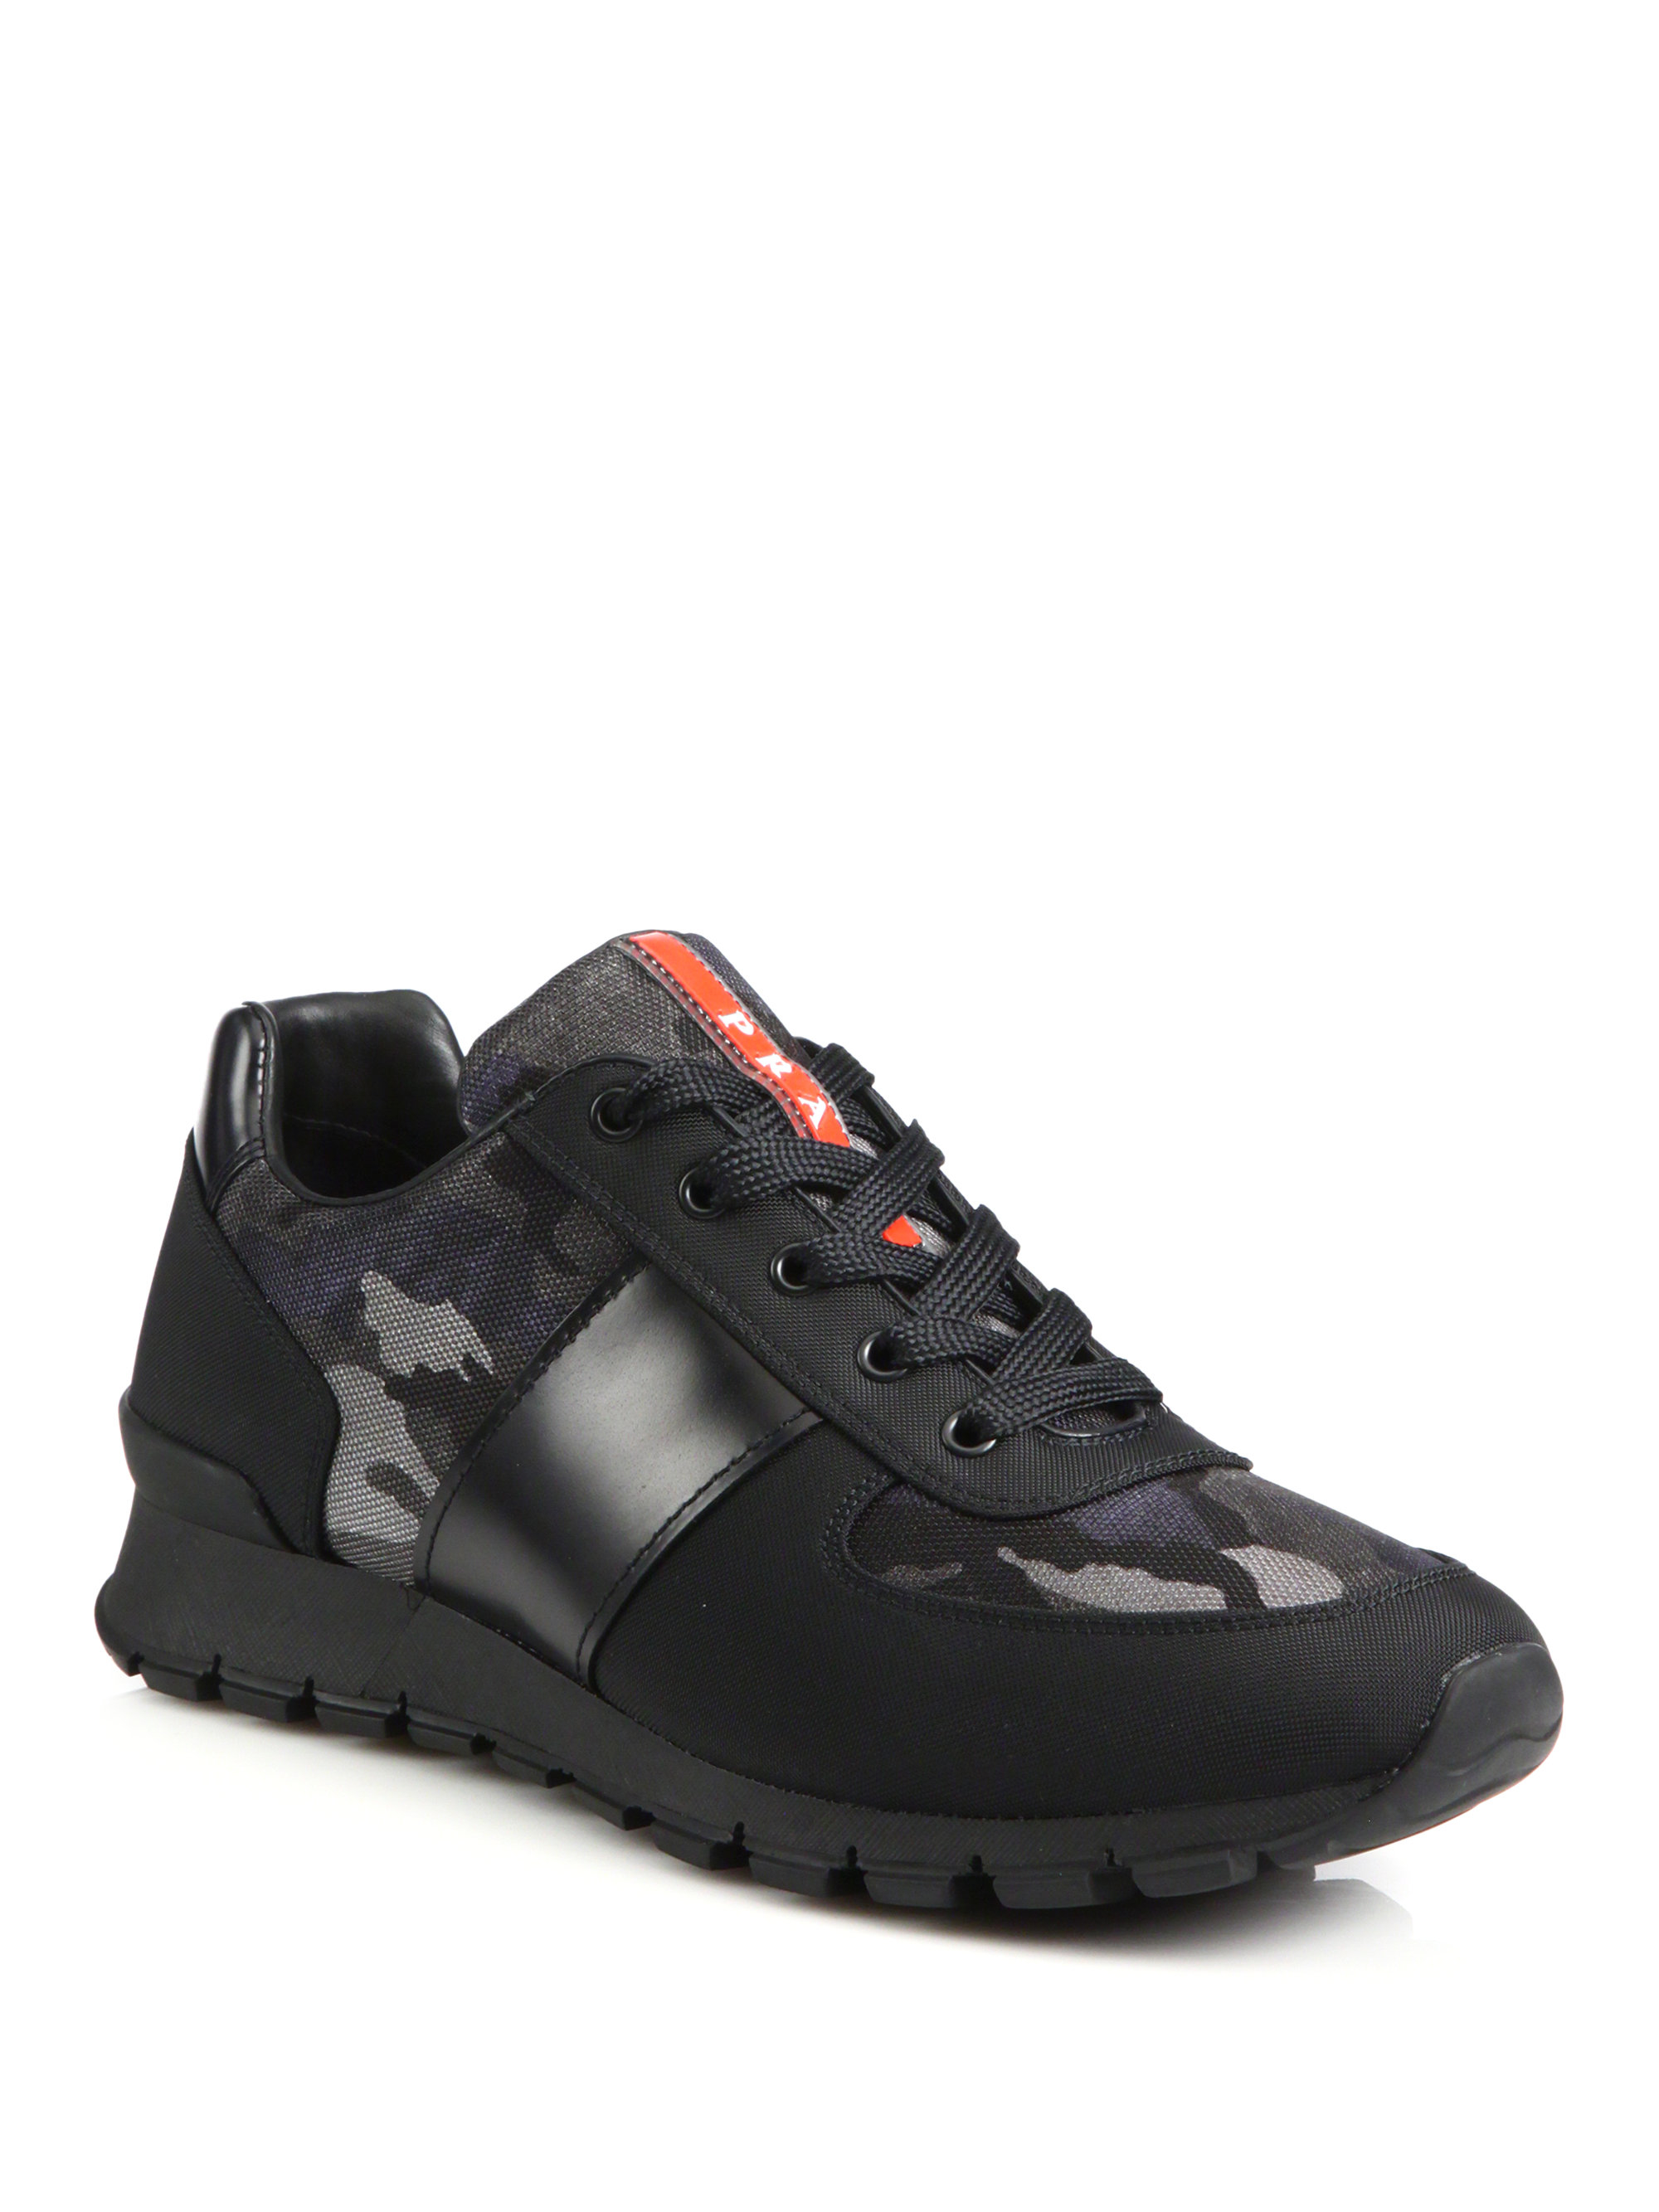 Prada Match Leather Amp Nylon Racing Sneakers In Black For